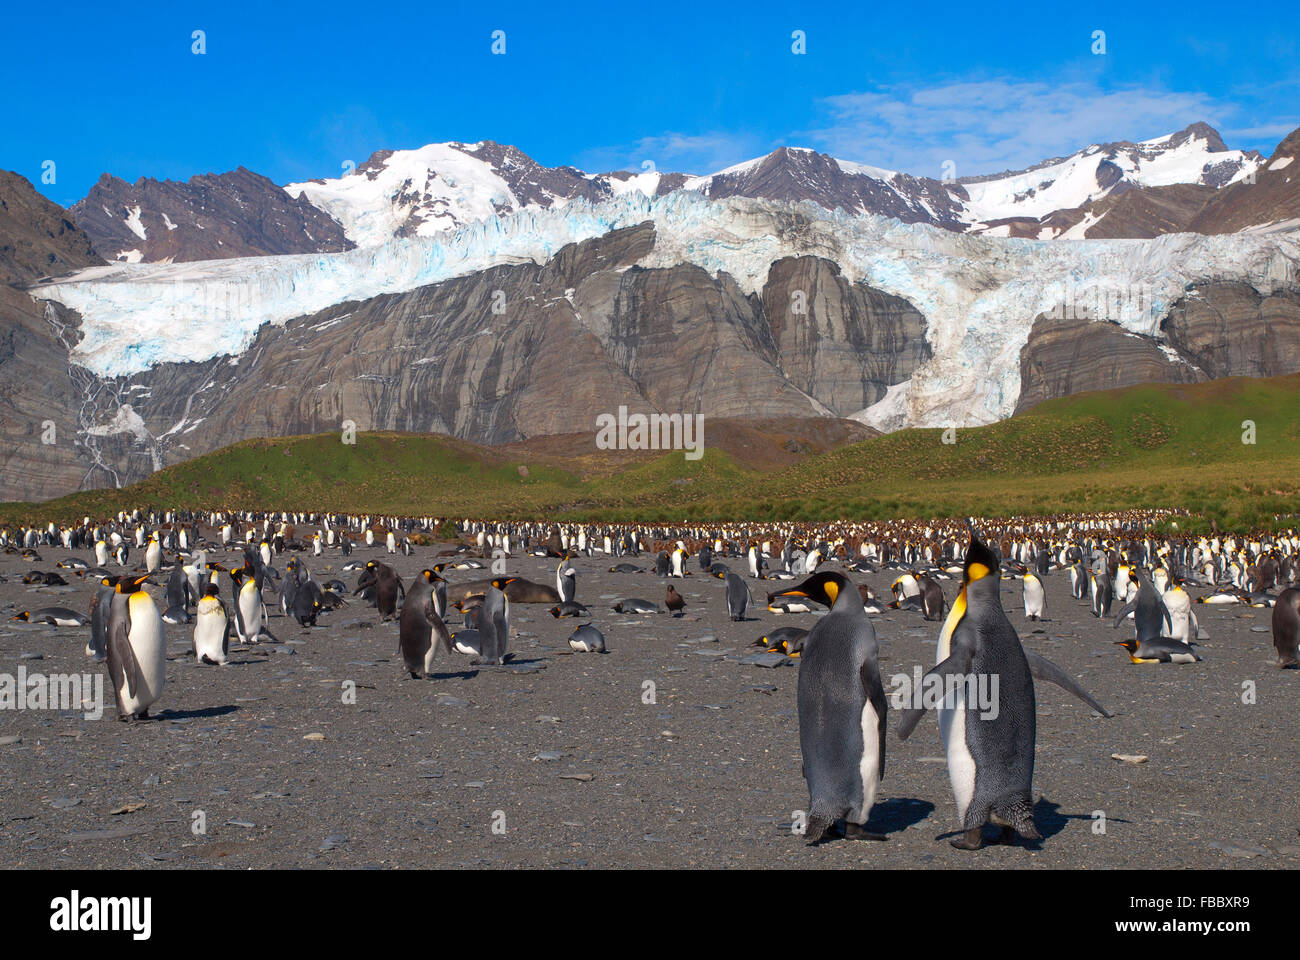 King penguin colony Gold Harbour, South Georgia - Stock Image